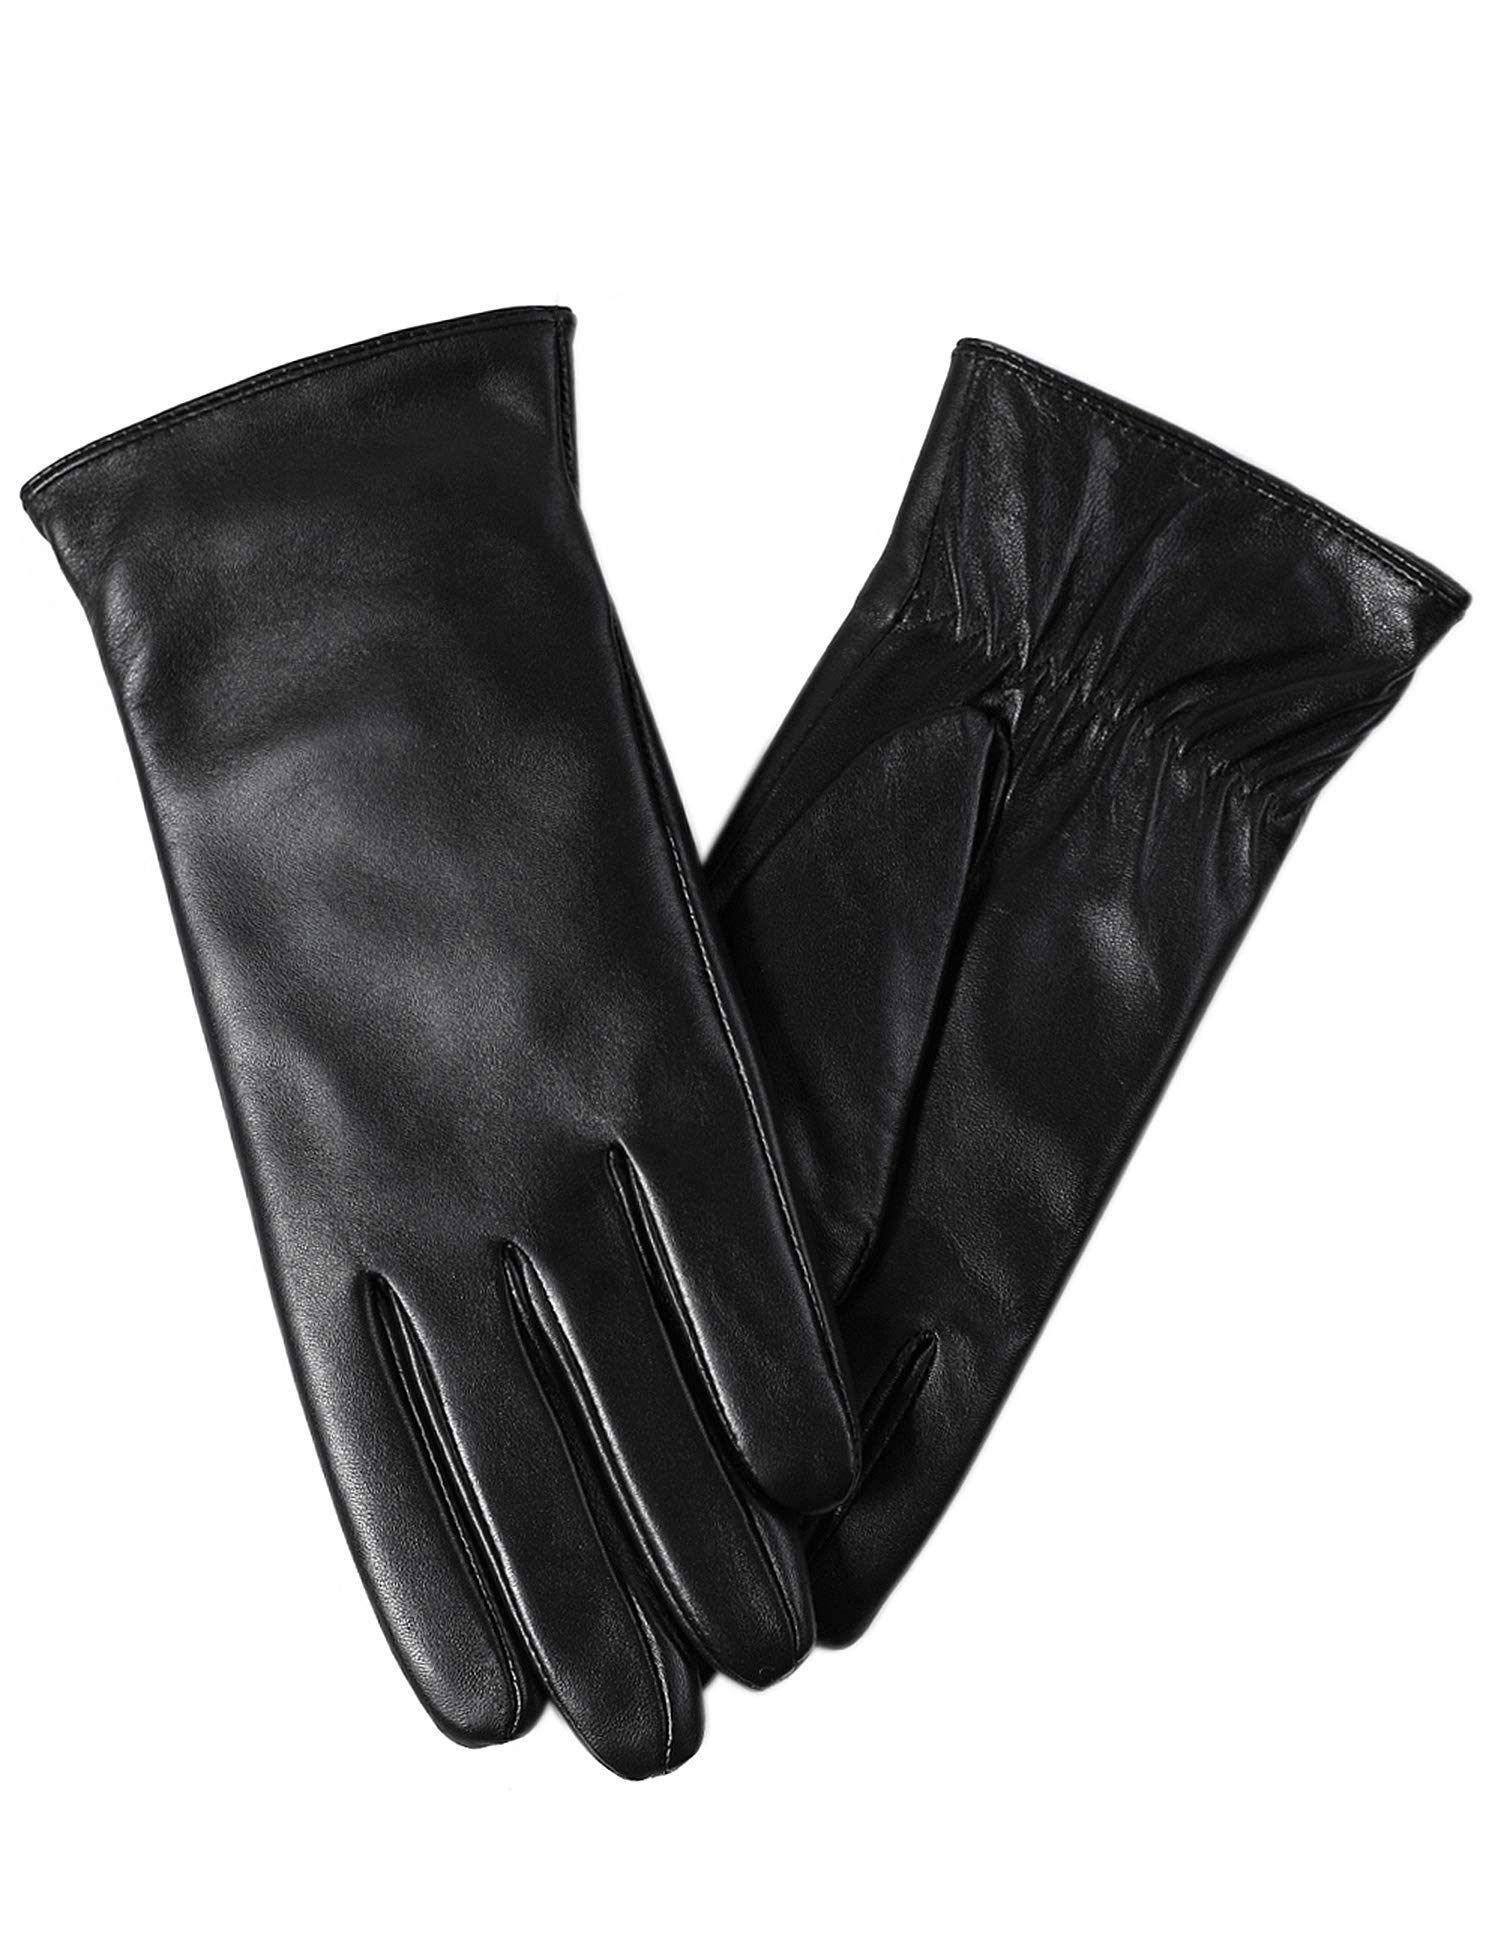 Super-soft Leather Winter Gloves for Women Full-Hand Touchscreen Warm Cashmere Lined Perfect Appearance by FEIQIAOSH